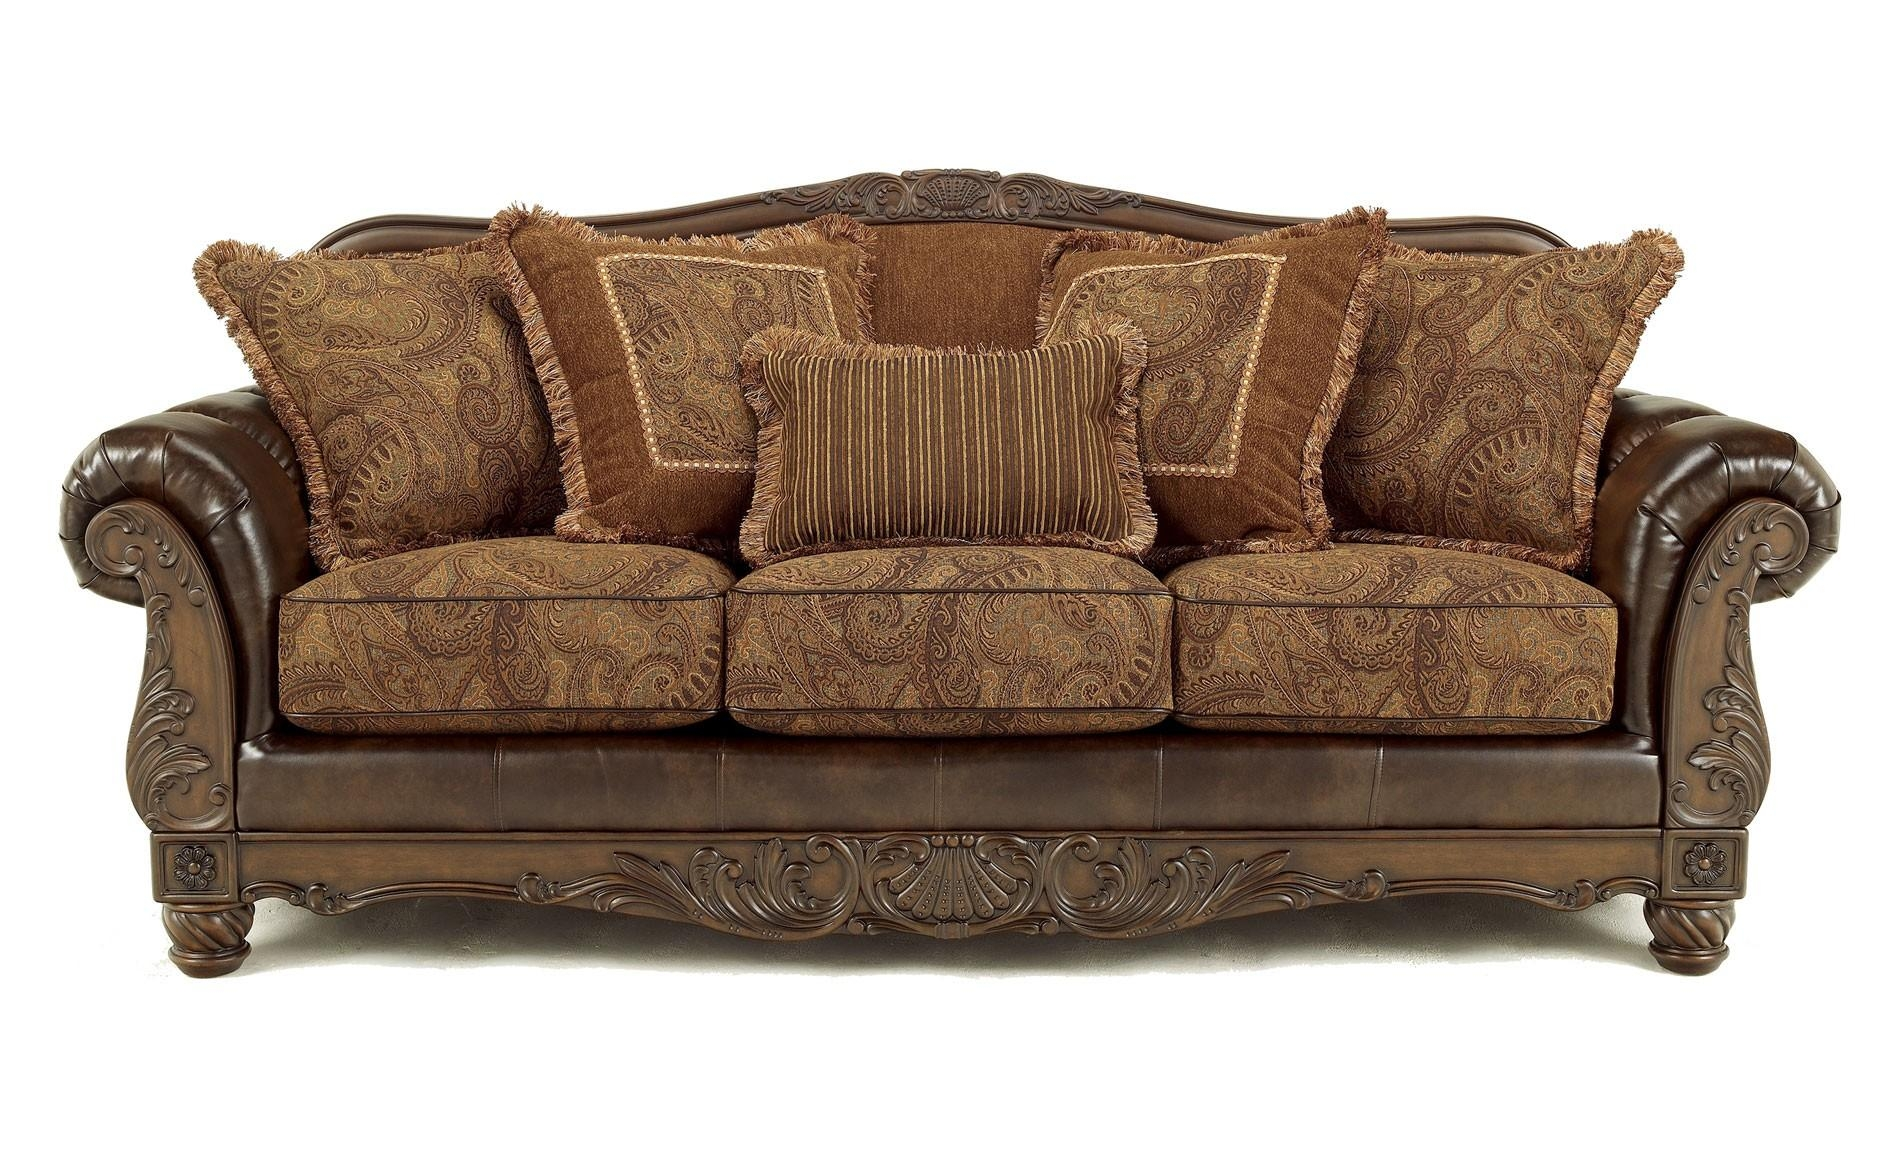 20 best ideas old fashioned sofas sofa ideas Antique loveseat styles